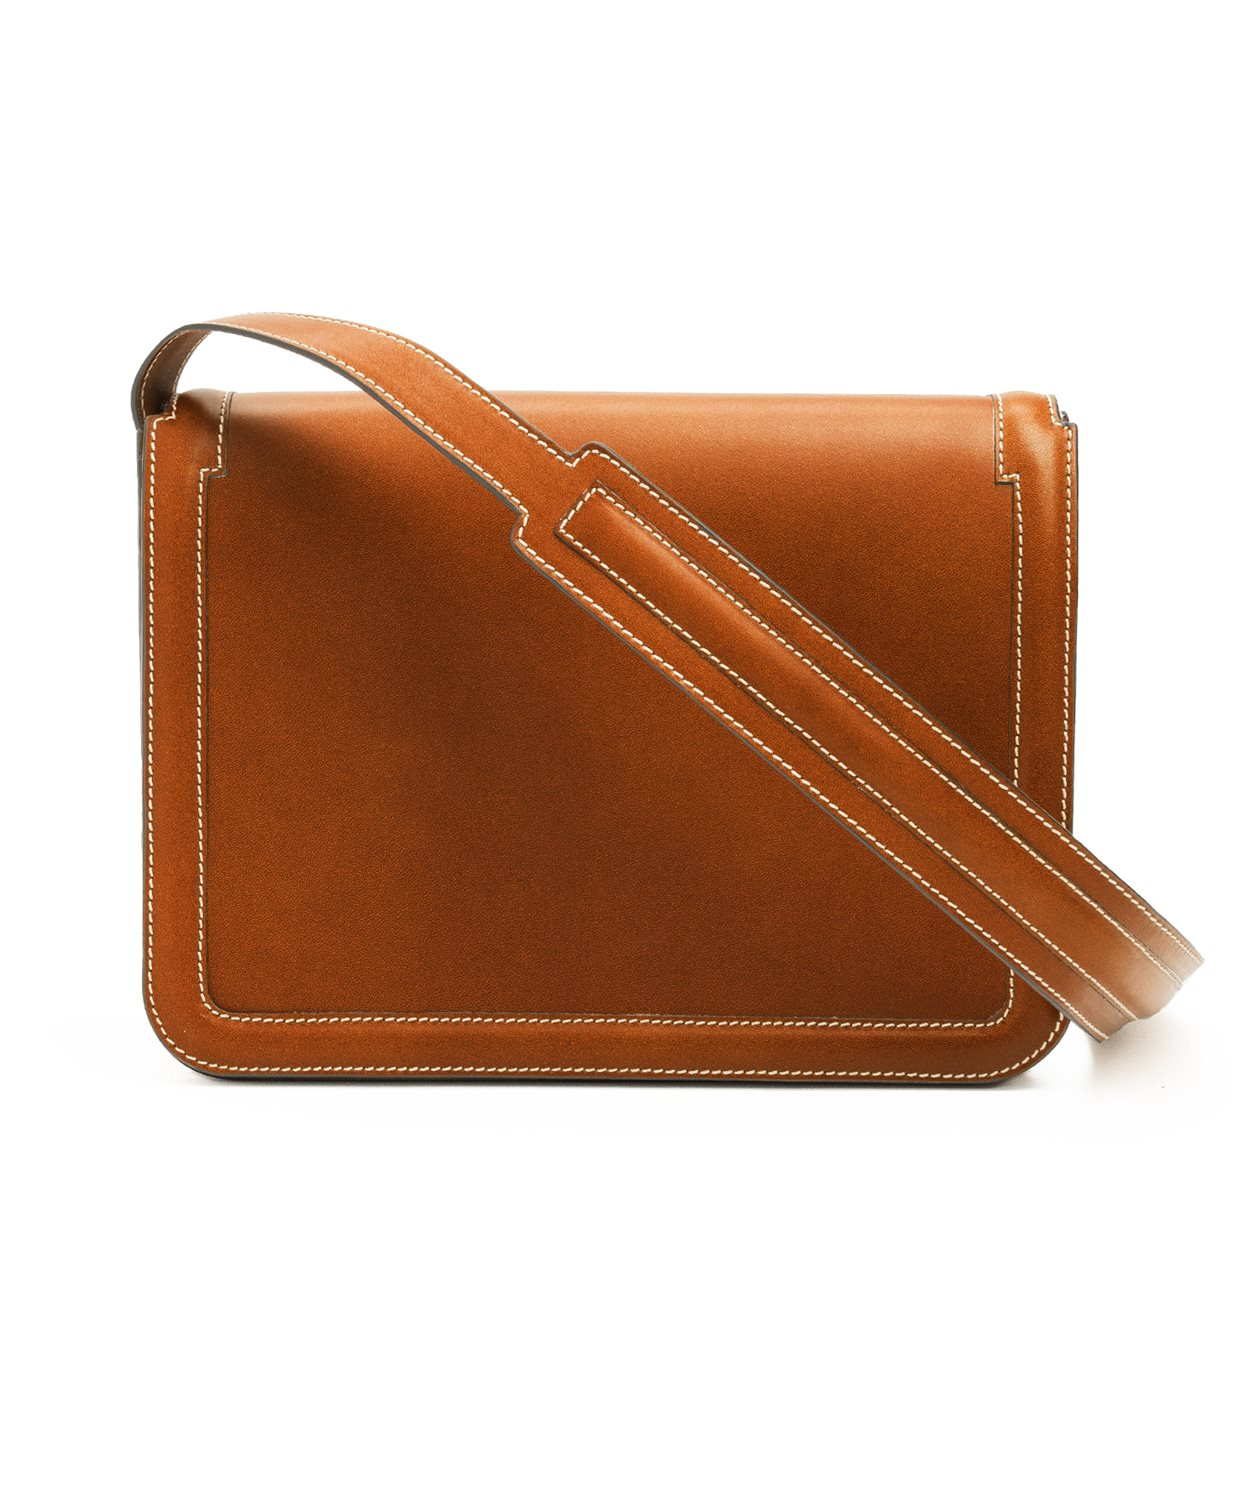 Palmgrens - Ramväska Natur - Genuine handcrafted leather since 1896 a042c445616d1